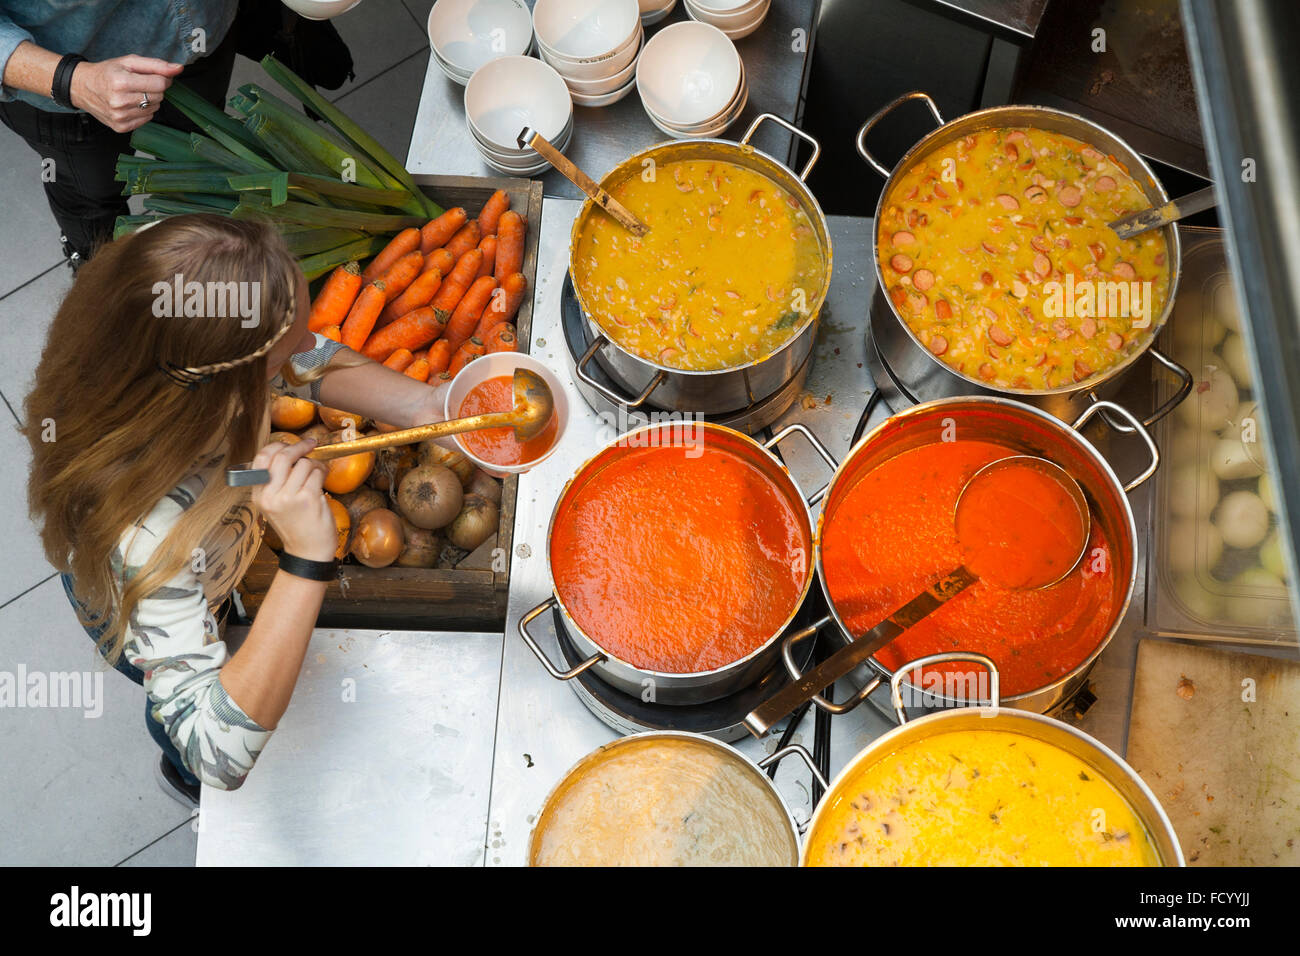 Customers serve themselves with hot soup at La Place self service food restaurant in central Amsterdam. Holland. - Stock Image